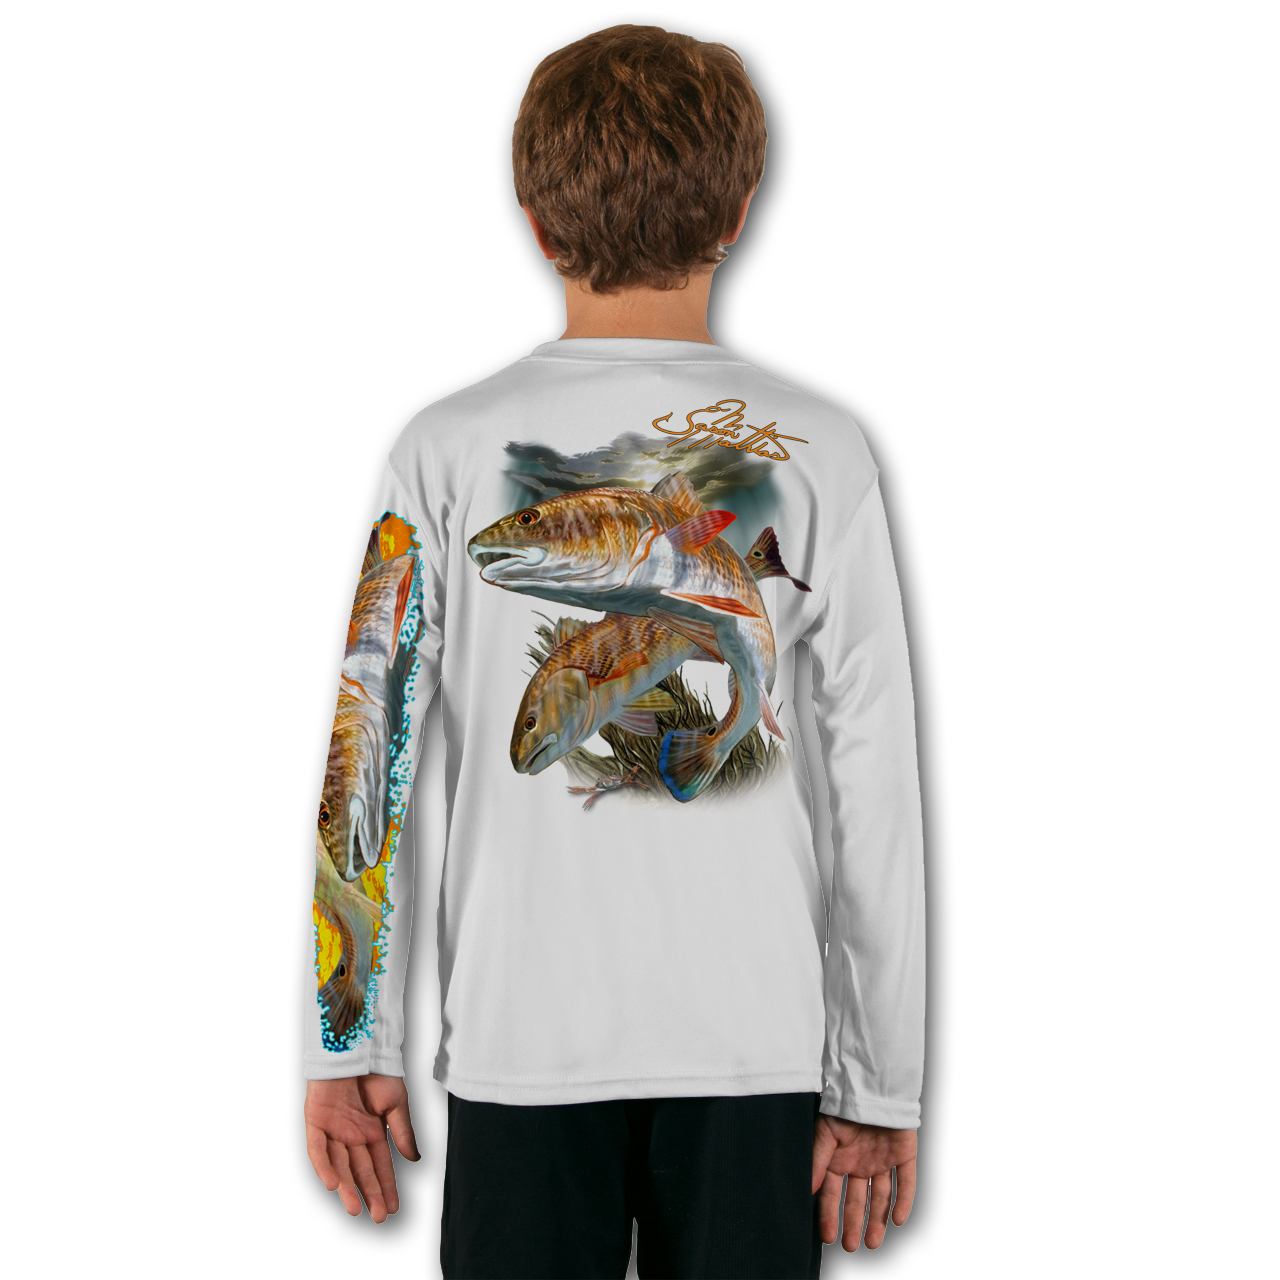 redfish-white-youth-solar-ls-back-performance-shirt.png